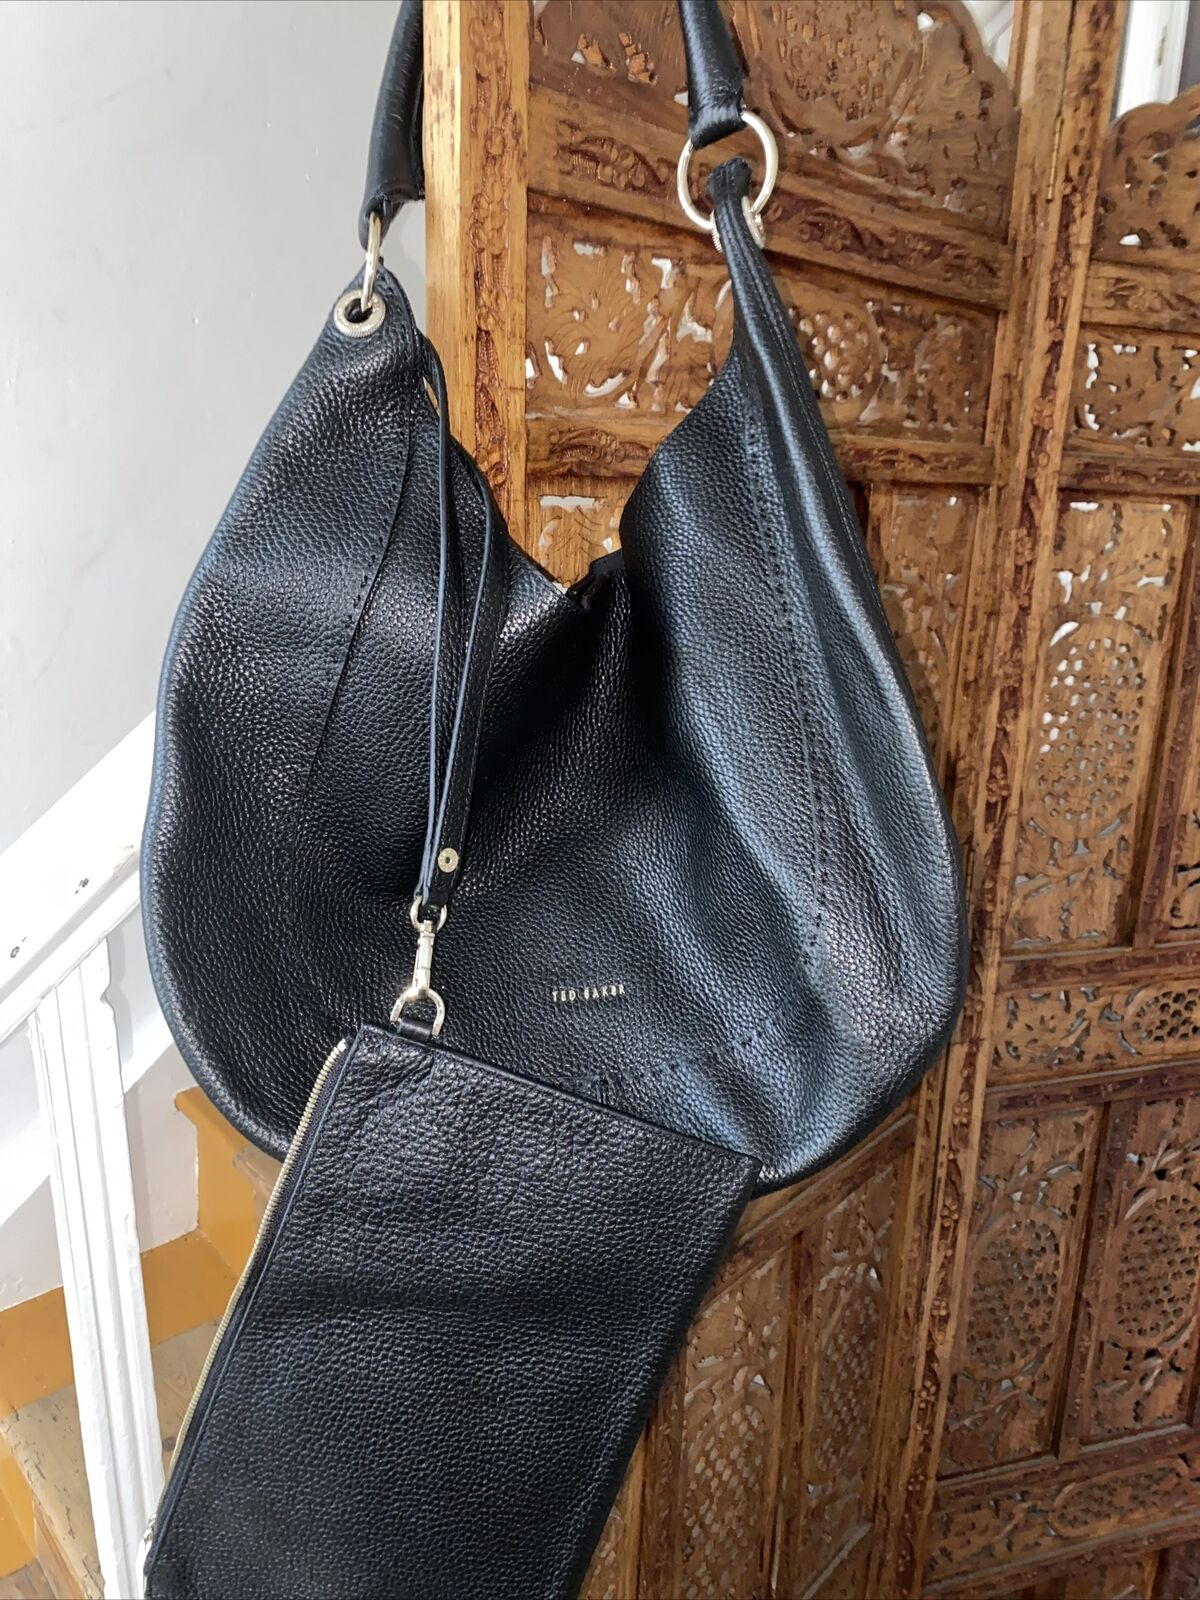 Ted Baker Black Leather Shoulder Bag New With Tags